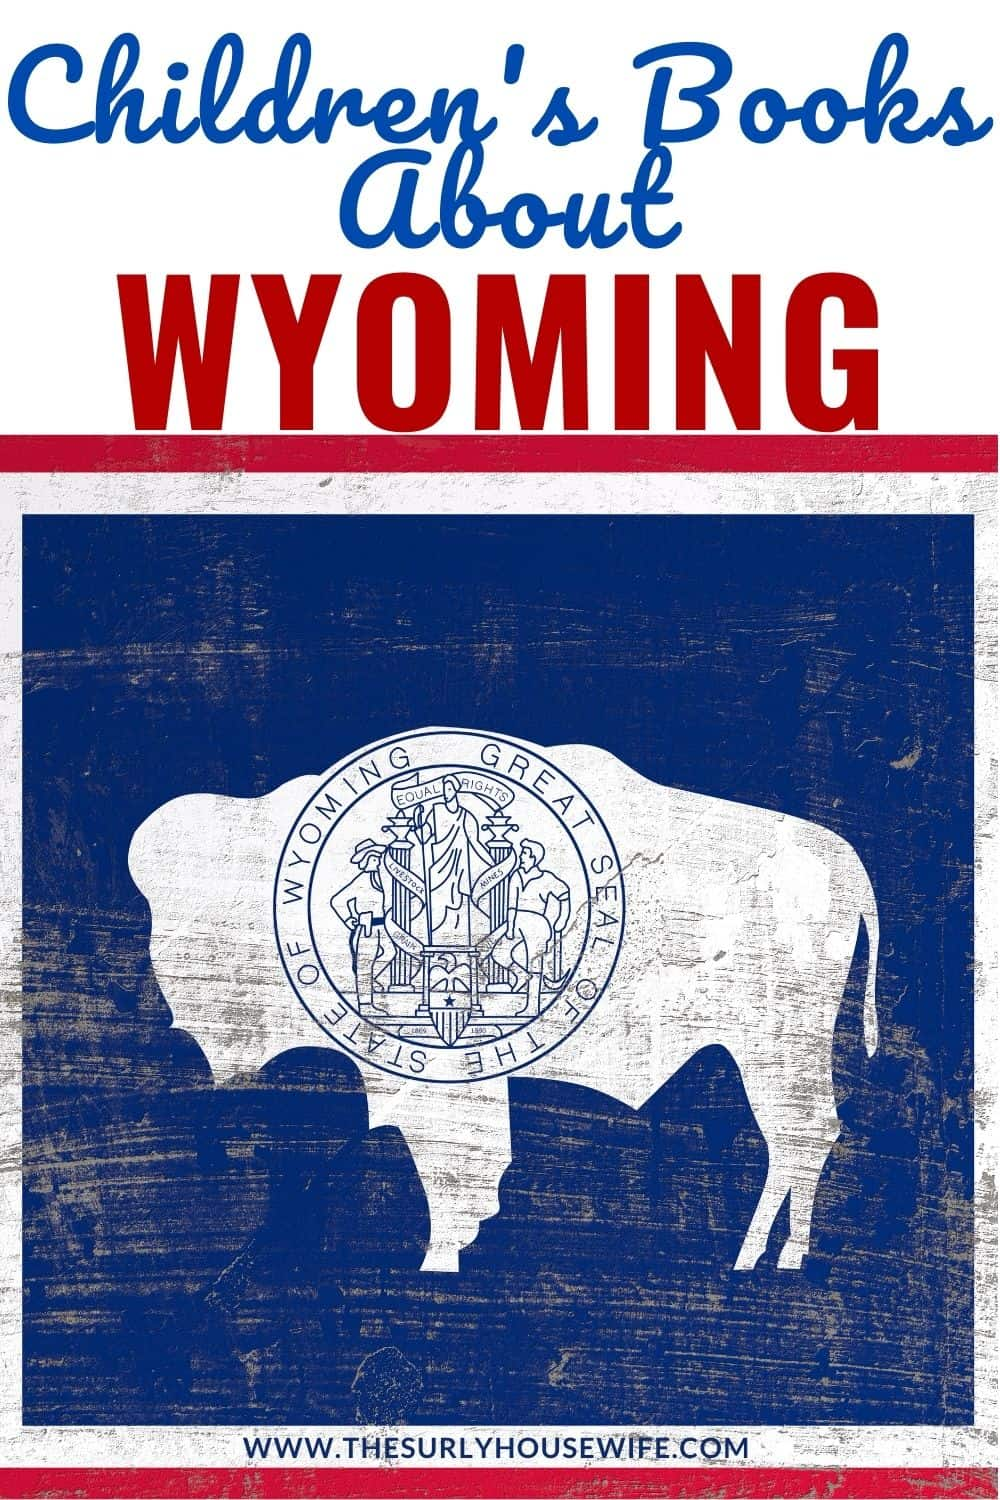 Looking for children's books about Wyoming? This post includes picture AND chapter books set in Wyoming. Perfect for studying US history and geography.